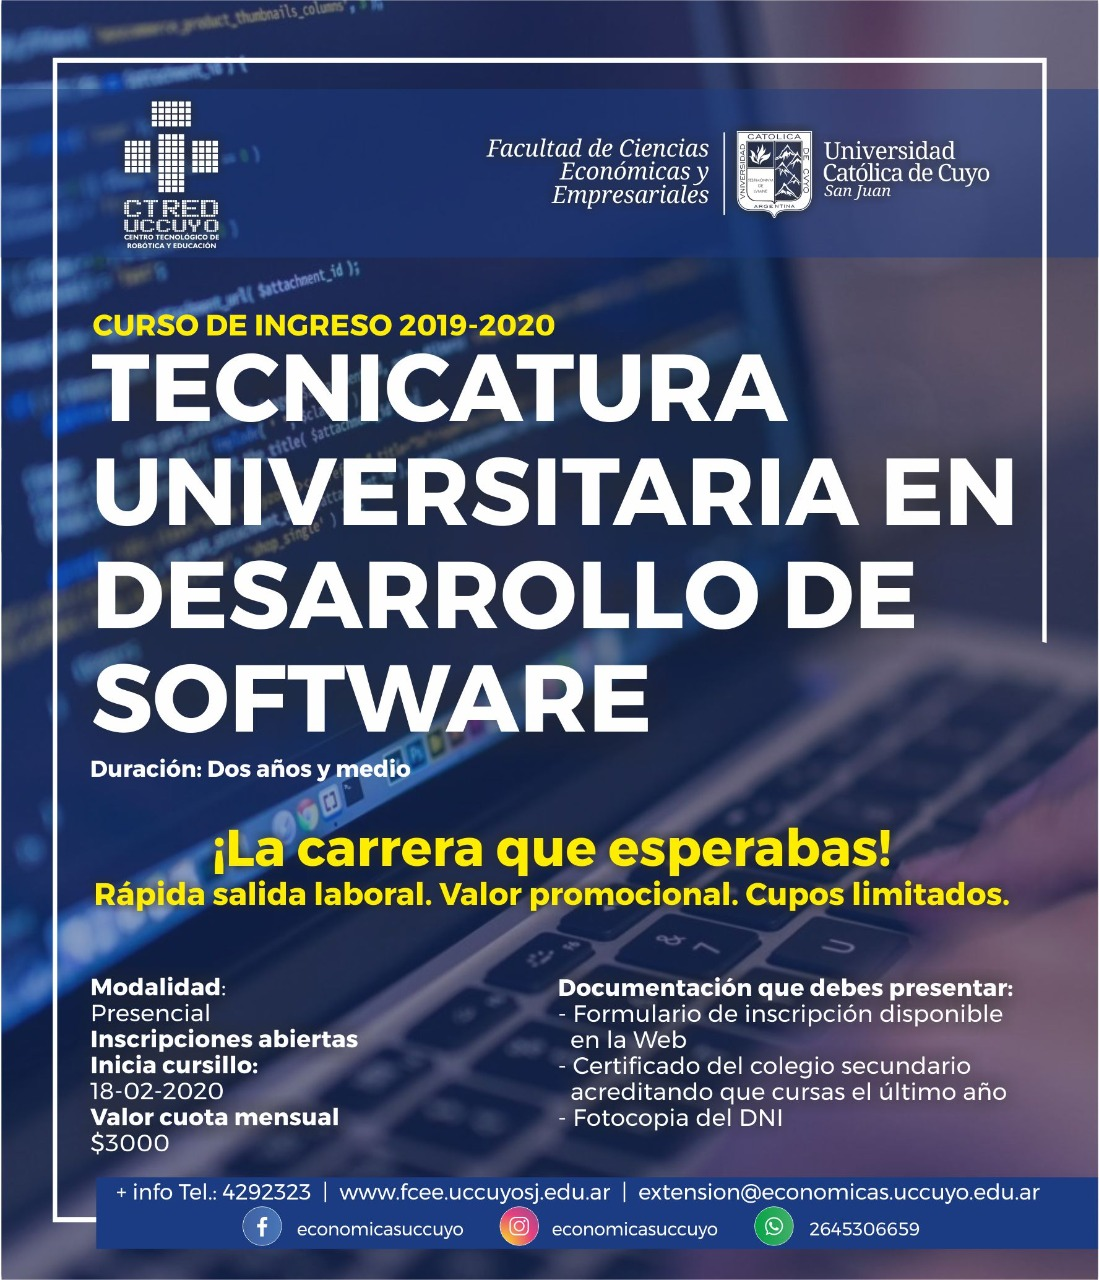 Tecnicatura Universitaria en Desarrollo de Software